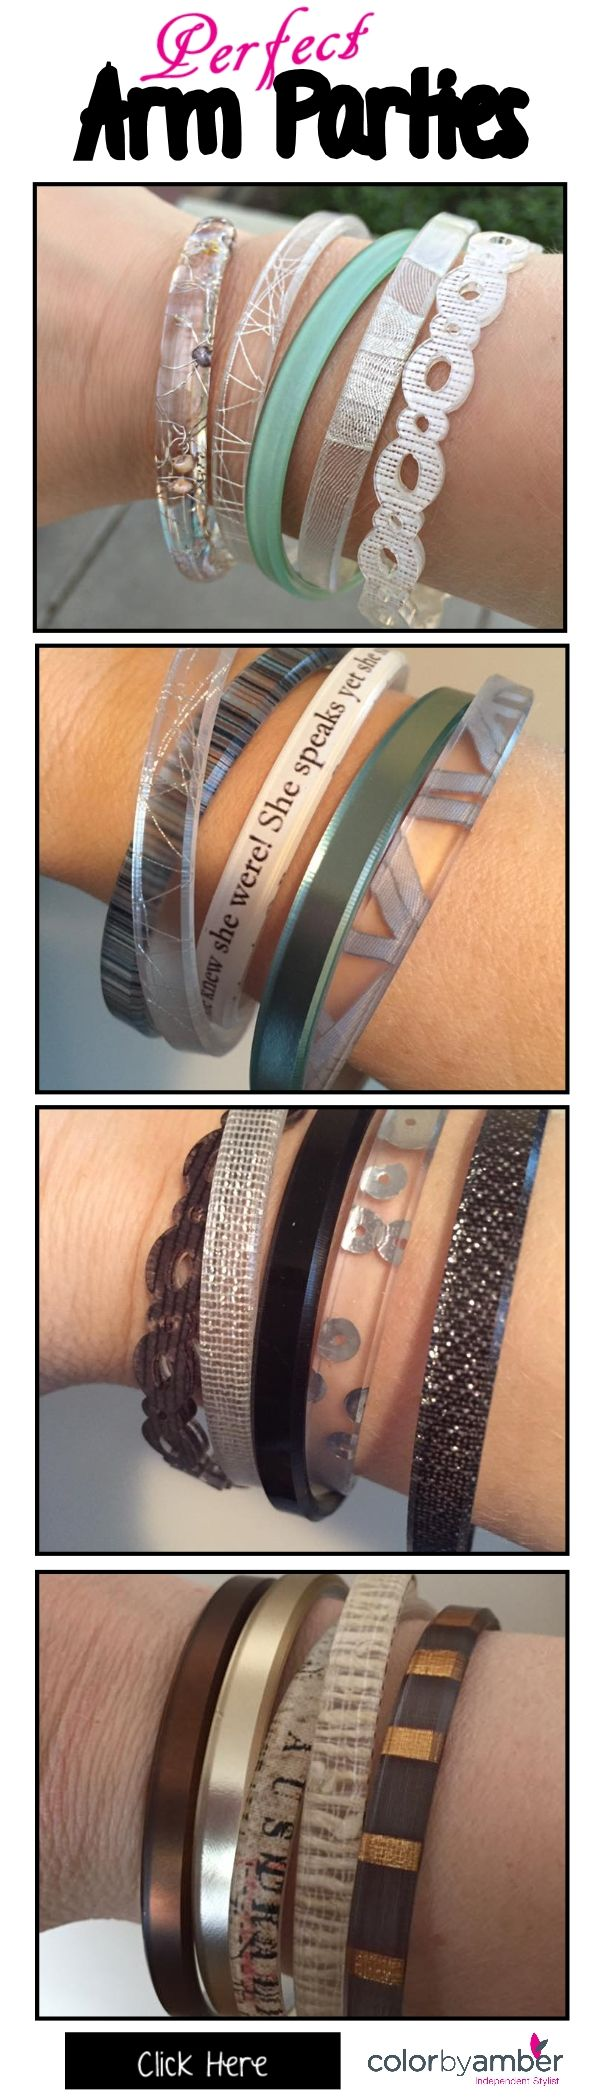 Create your perfect arm party at Color by Amber. We have 100 skinnies to choose from, starting at $14.50 CAD each. https://candicehealing.mycolorbyamber.com   jewelry, bracelets, women's fashion, ecofriendly, unique, color by amber